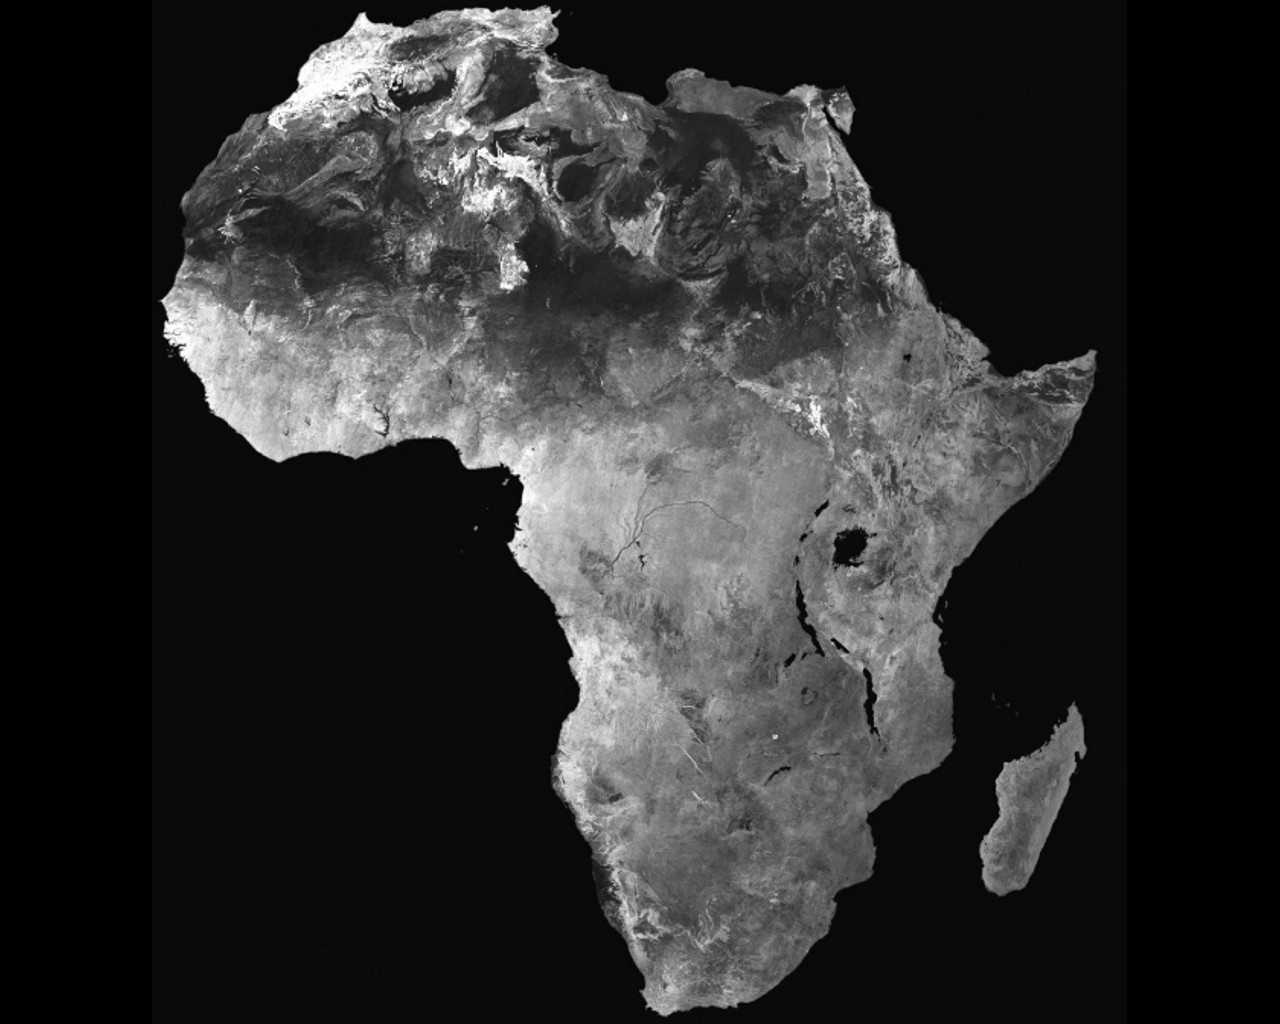 africa map 1280x1024